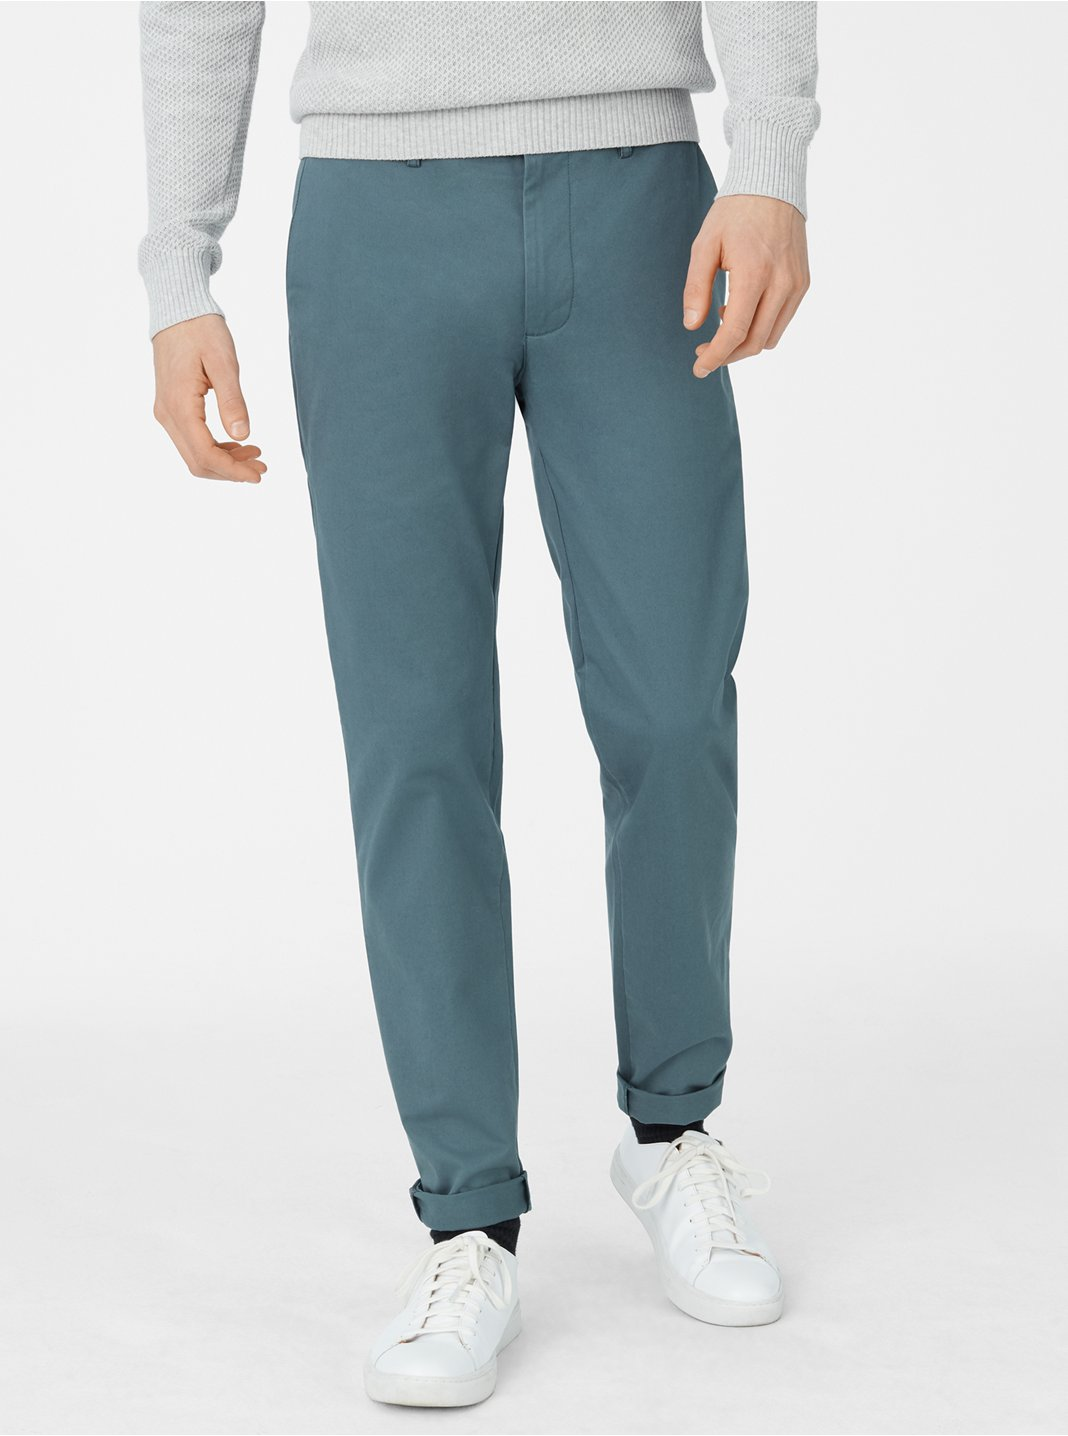 34264cee Mens Pants | Club Monaco